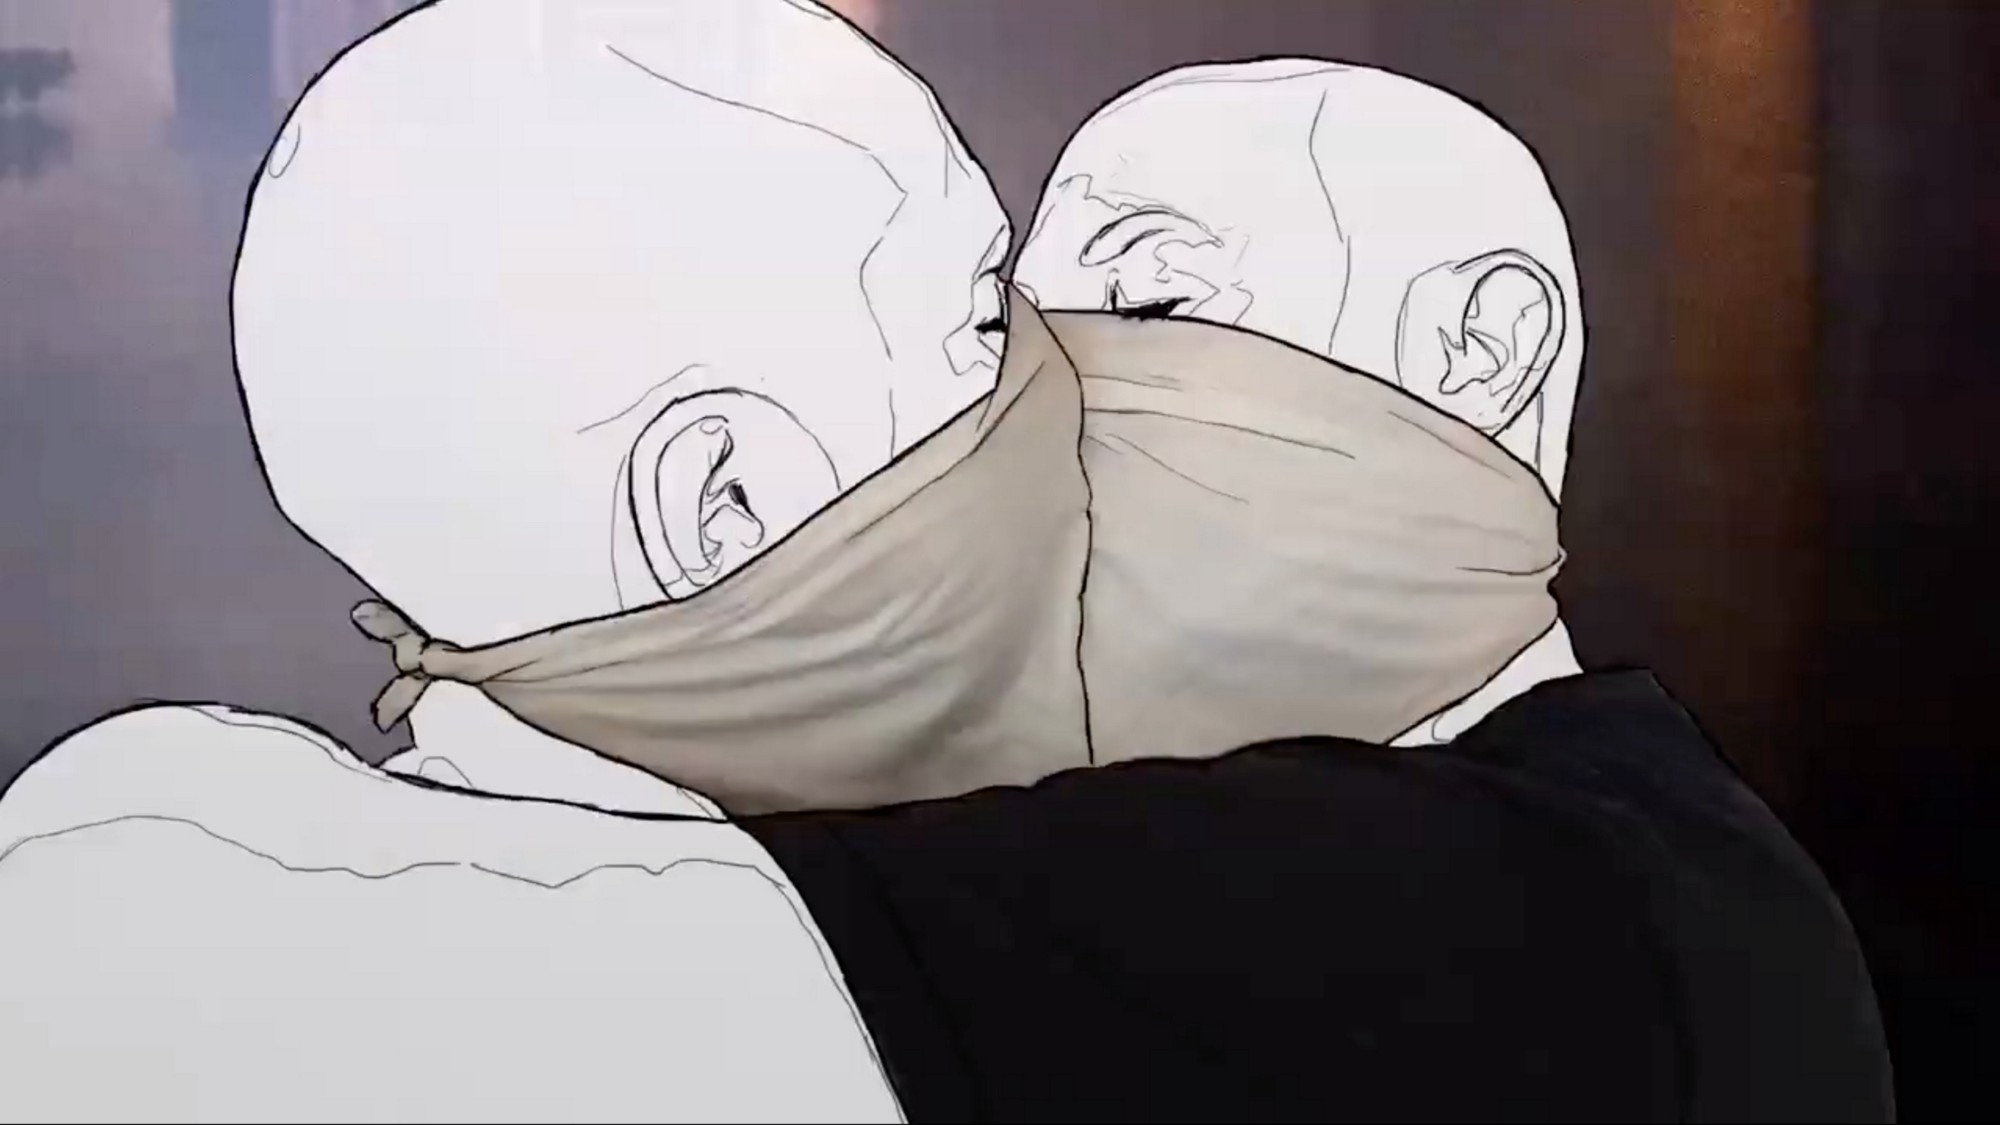 digital illustration of two people with bald heads wearing bandana face masks and kissing